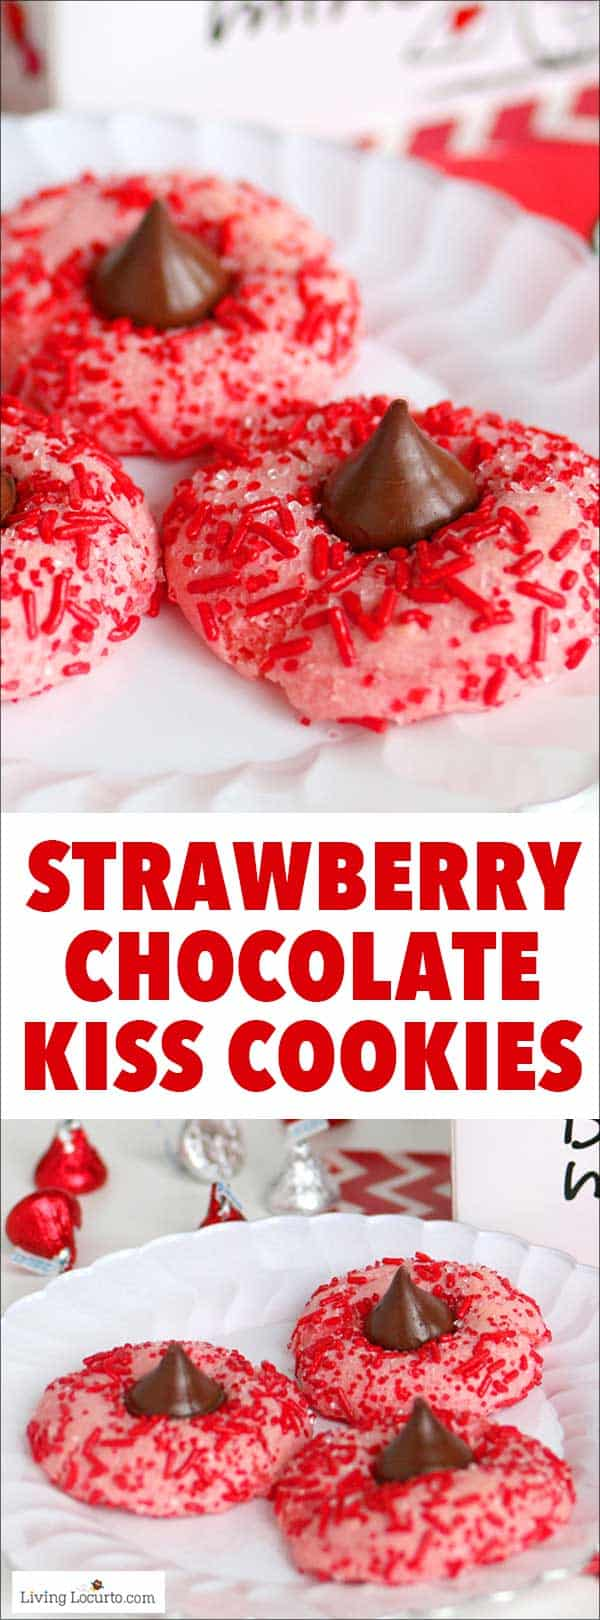 Easy Strawberry Chocolate Kiss Cookies recipe! Strawberry cake mix thumbprint cookies rolled in red candy sprinkles and with a Hershey's Chocolate Kiss. Cute for Valentine's Day. #cookies #recipe #chocolate